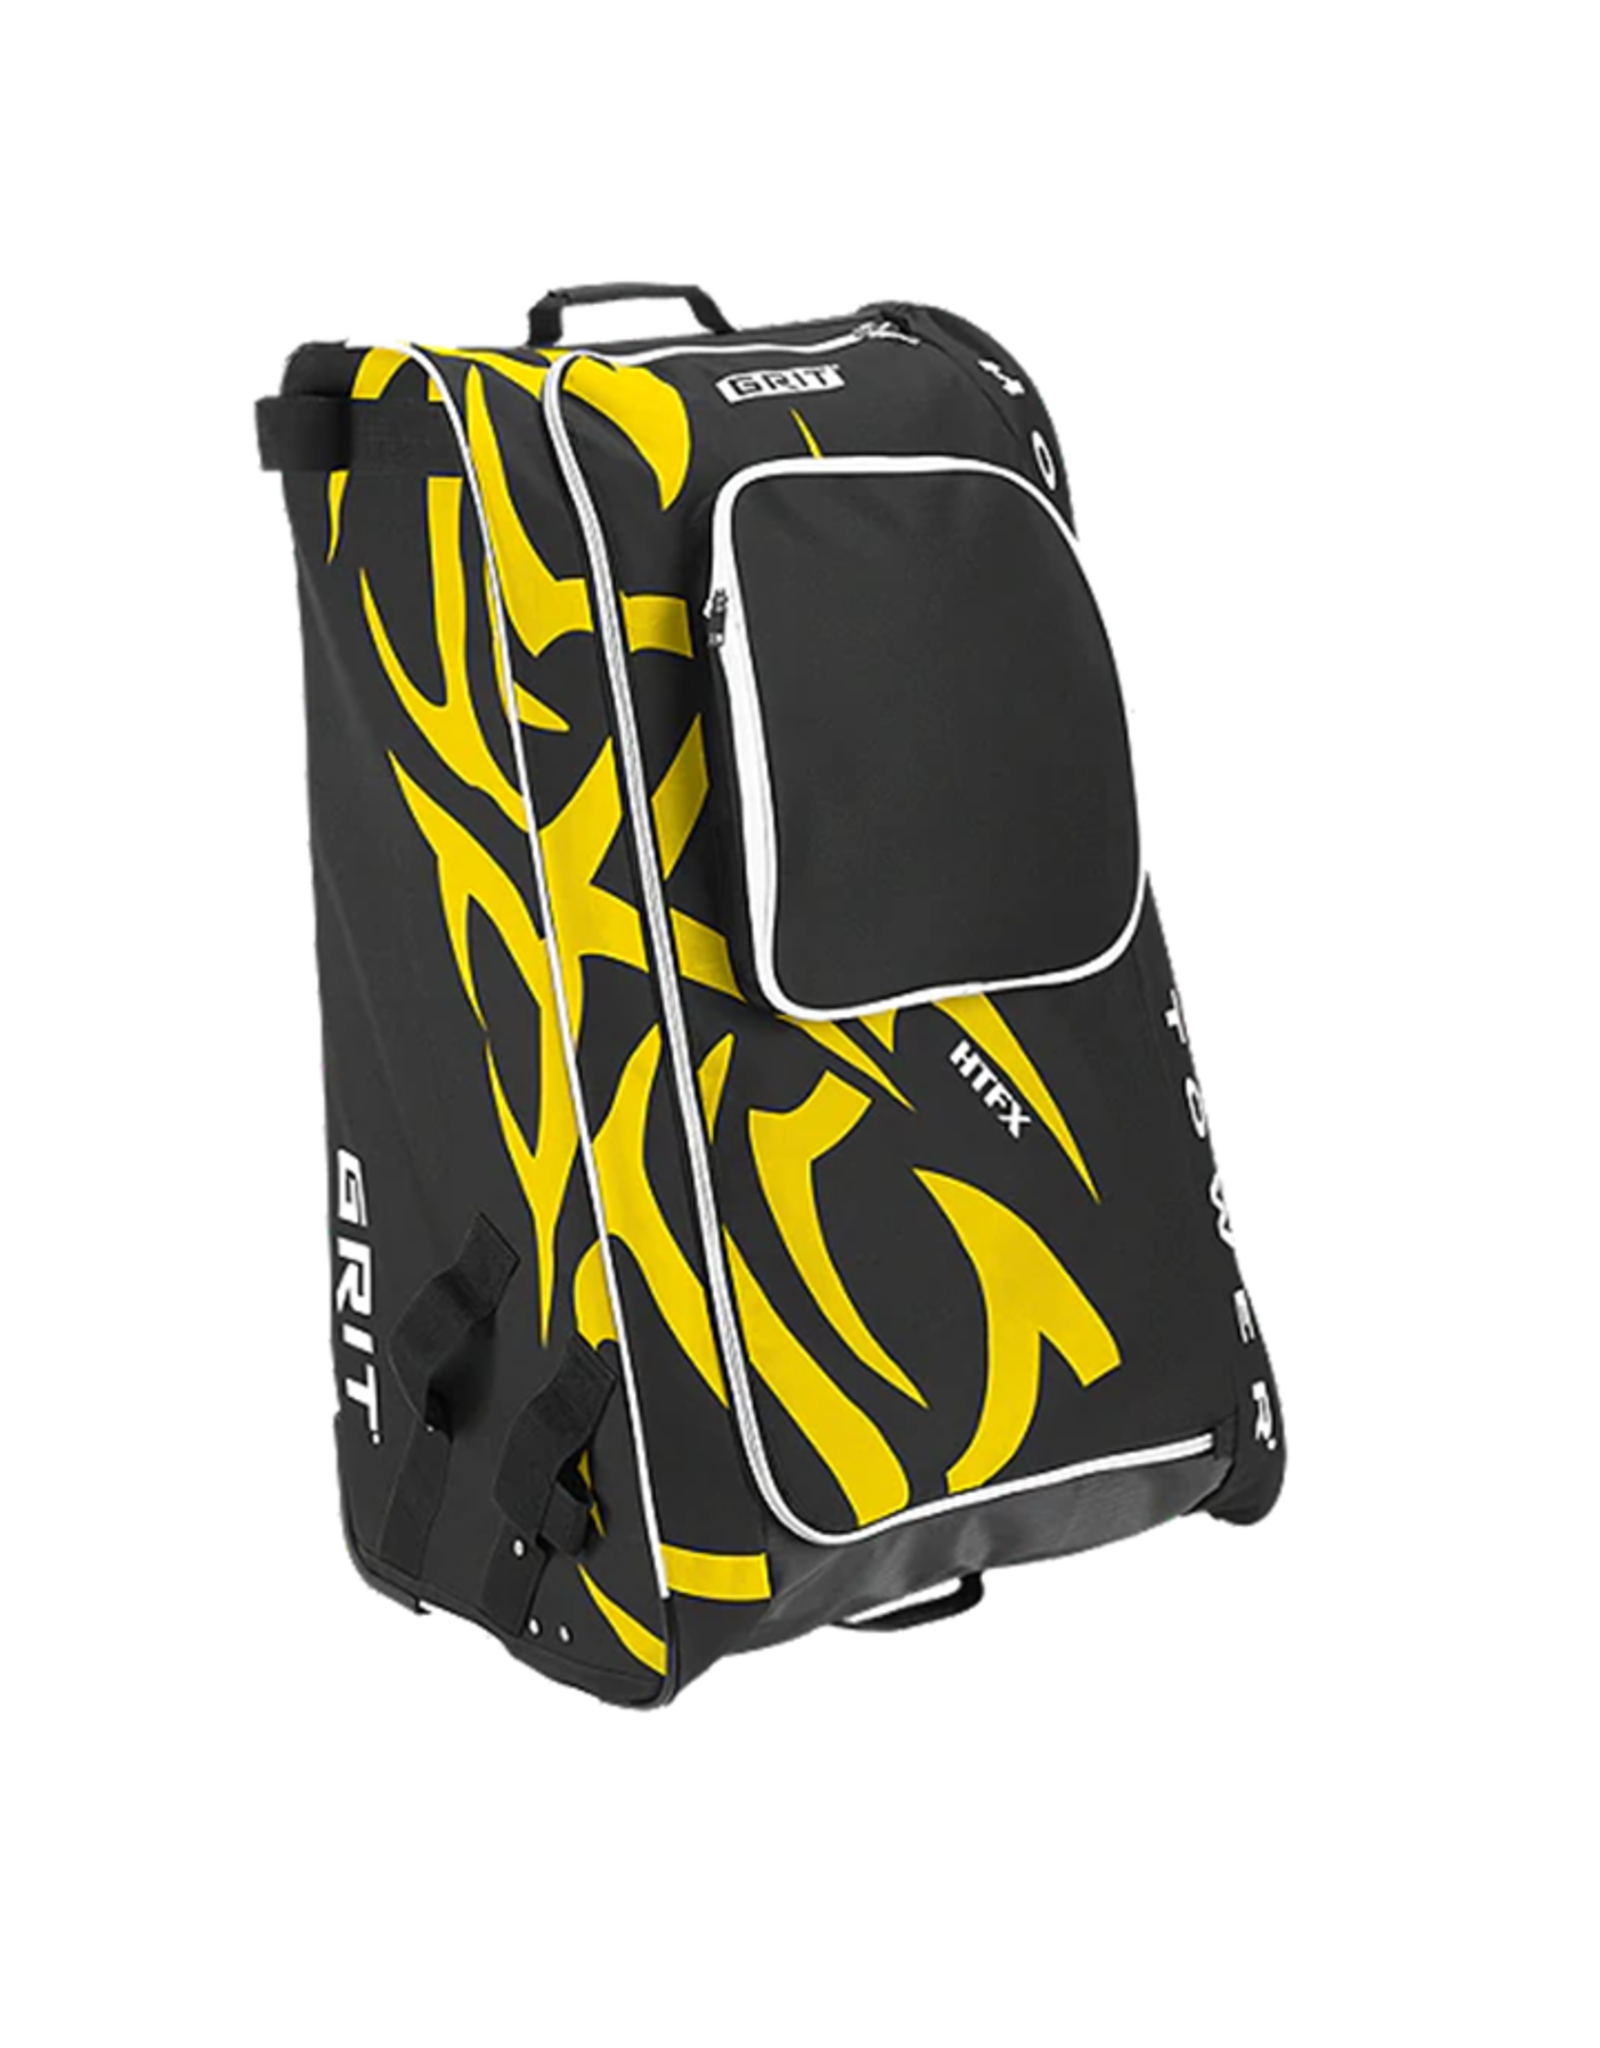 Grit HTFX Hockey Tower Bag 36""